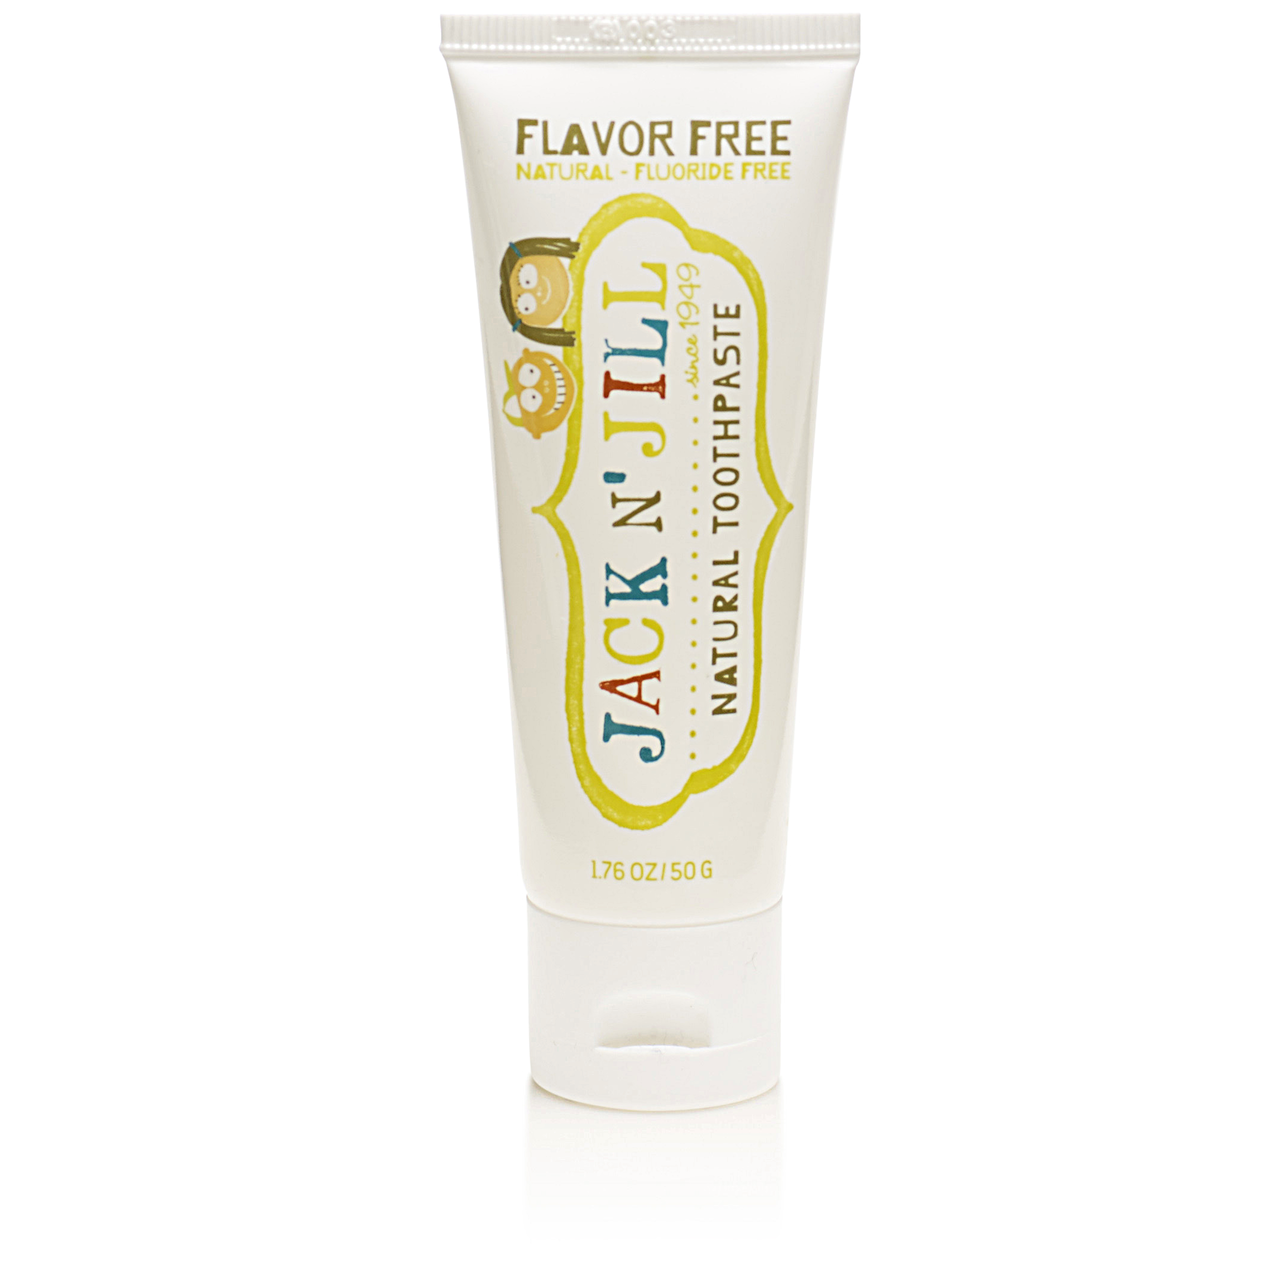 Unflavored Natural Calendula Toothpaste